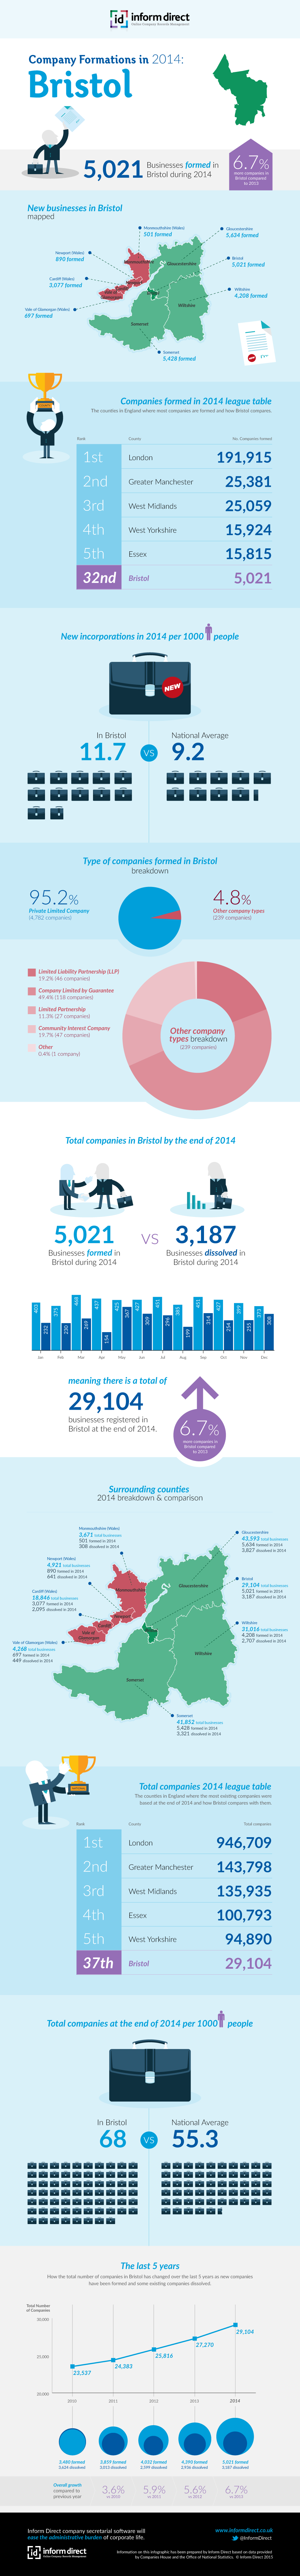 Inform Direct - Company Formations in Bristol 2014 Infographic